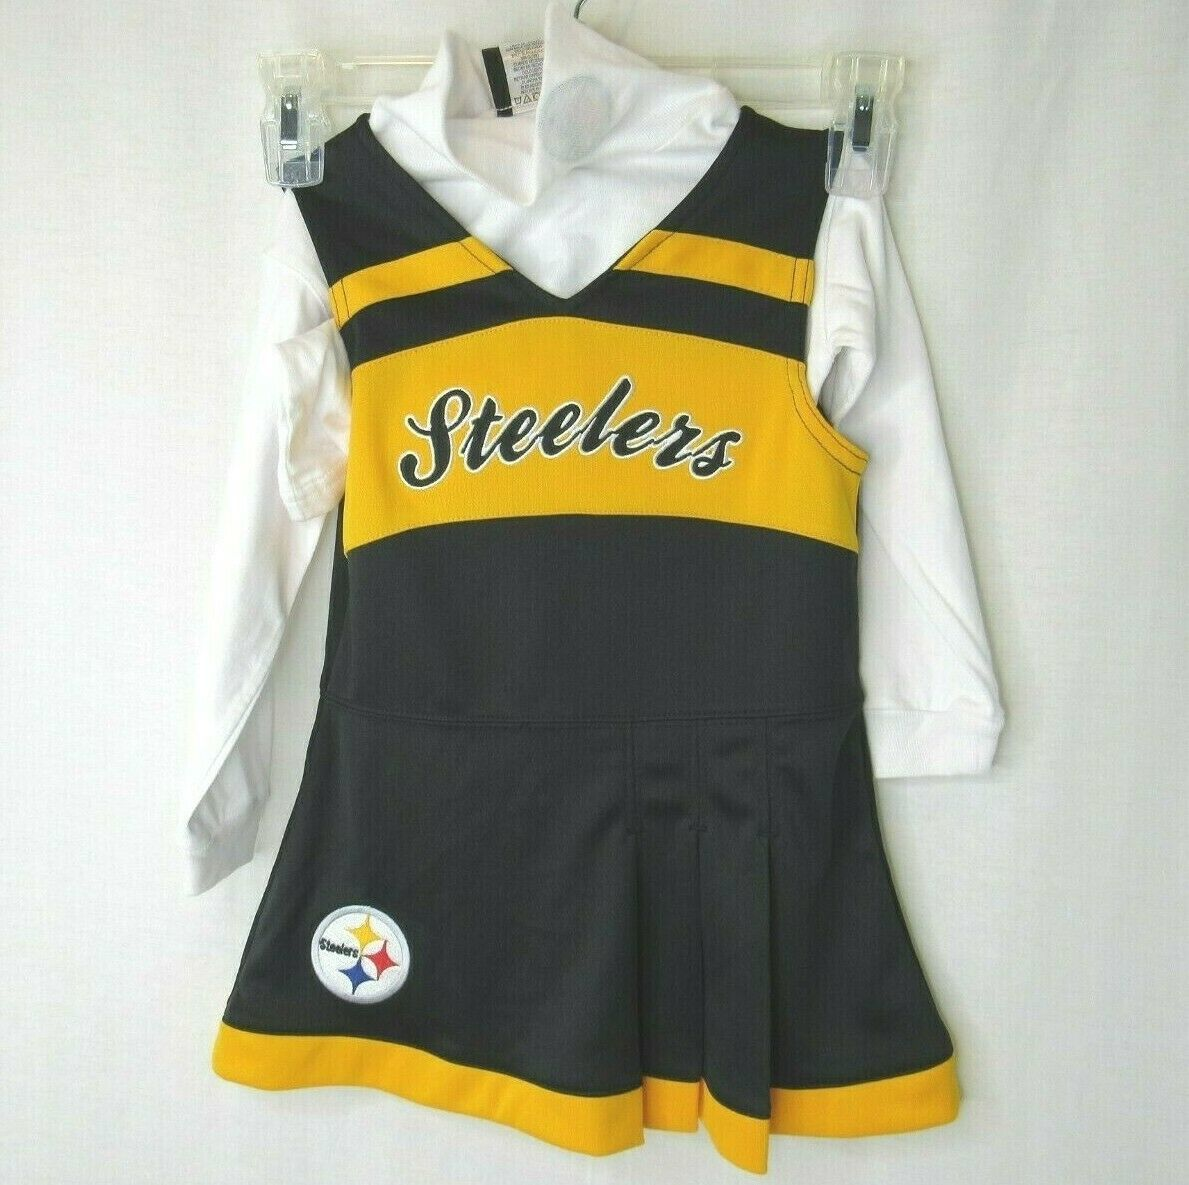 Primary image for Pittsburgh Steelers Cheerleader Dress Jumper Turtle Neck 3T NFL Team Apparel NWT